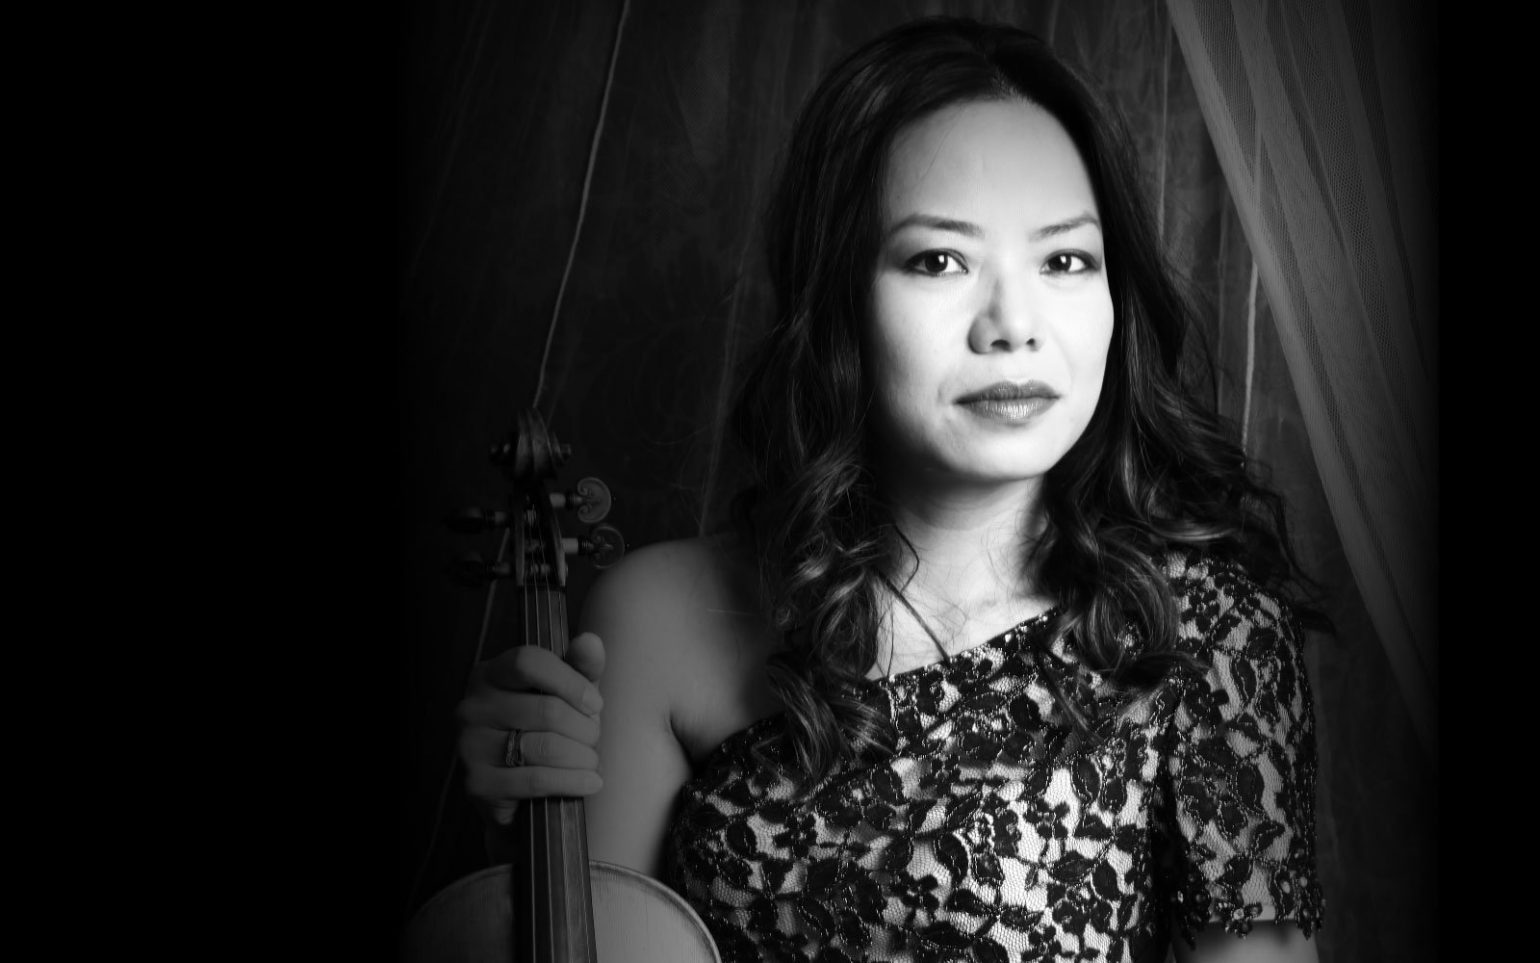 Ning Kam holding violin in front of curtain greyscale